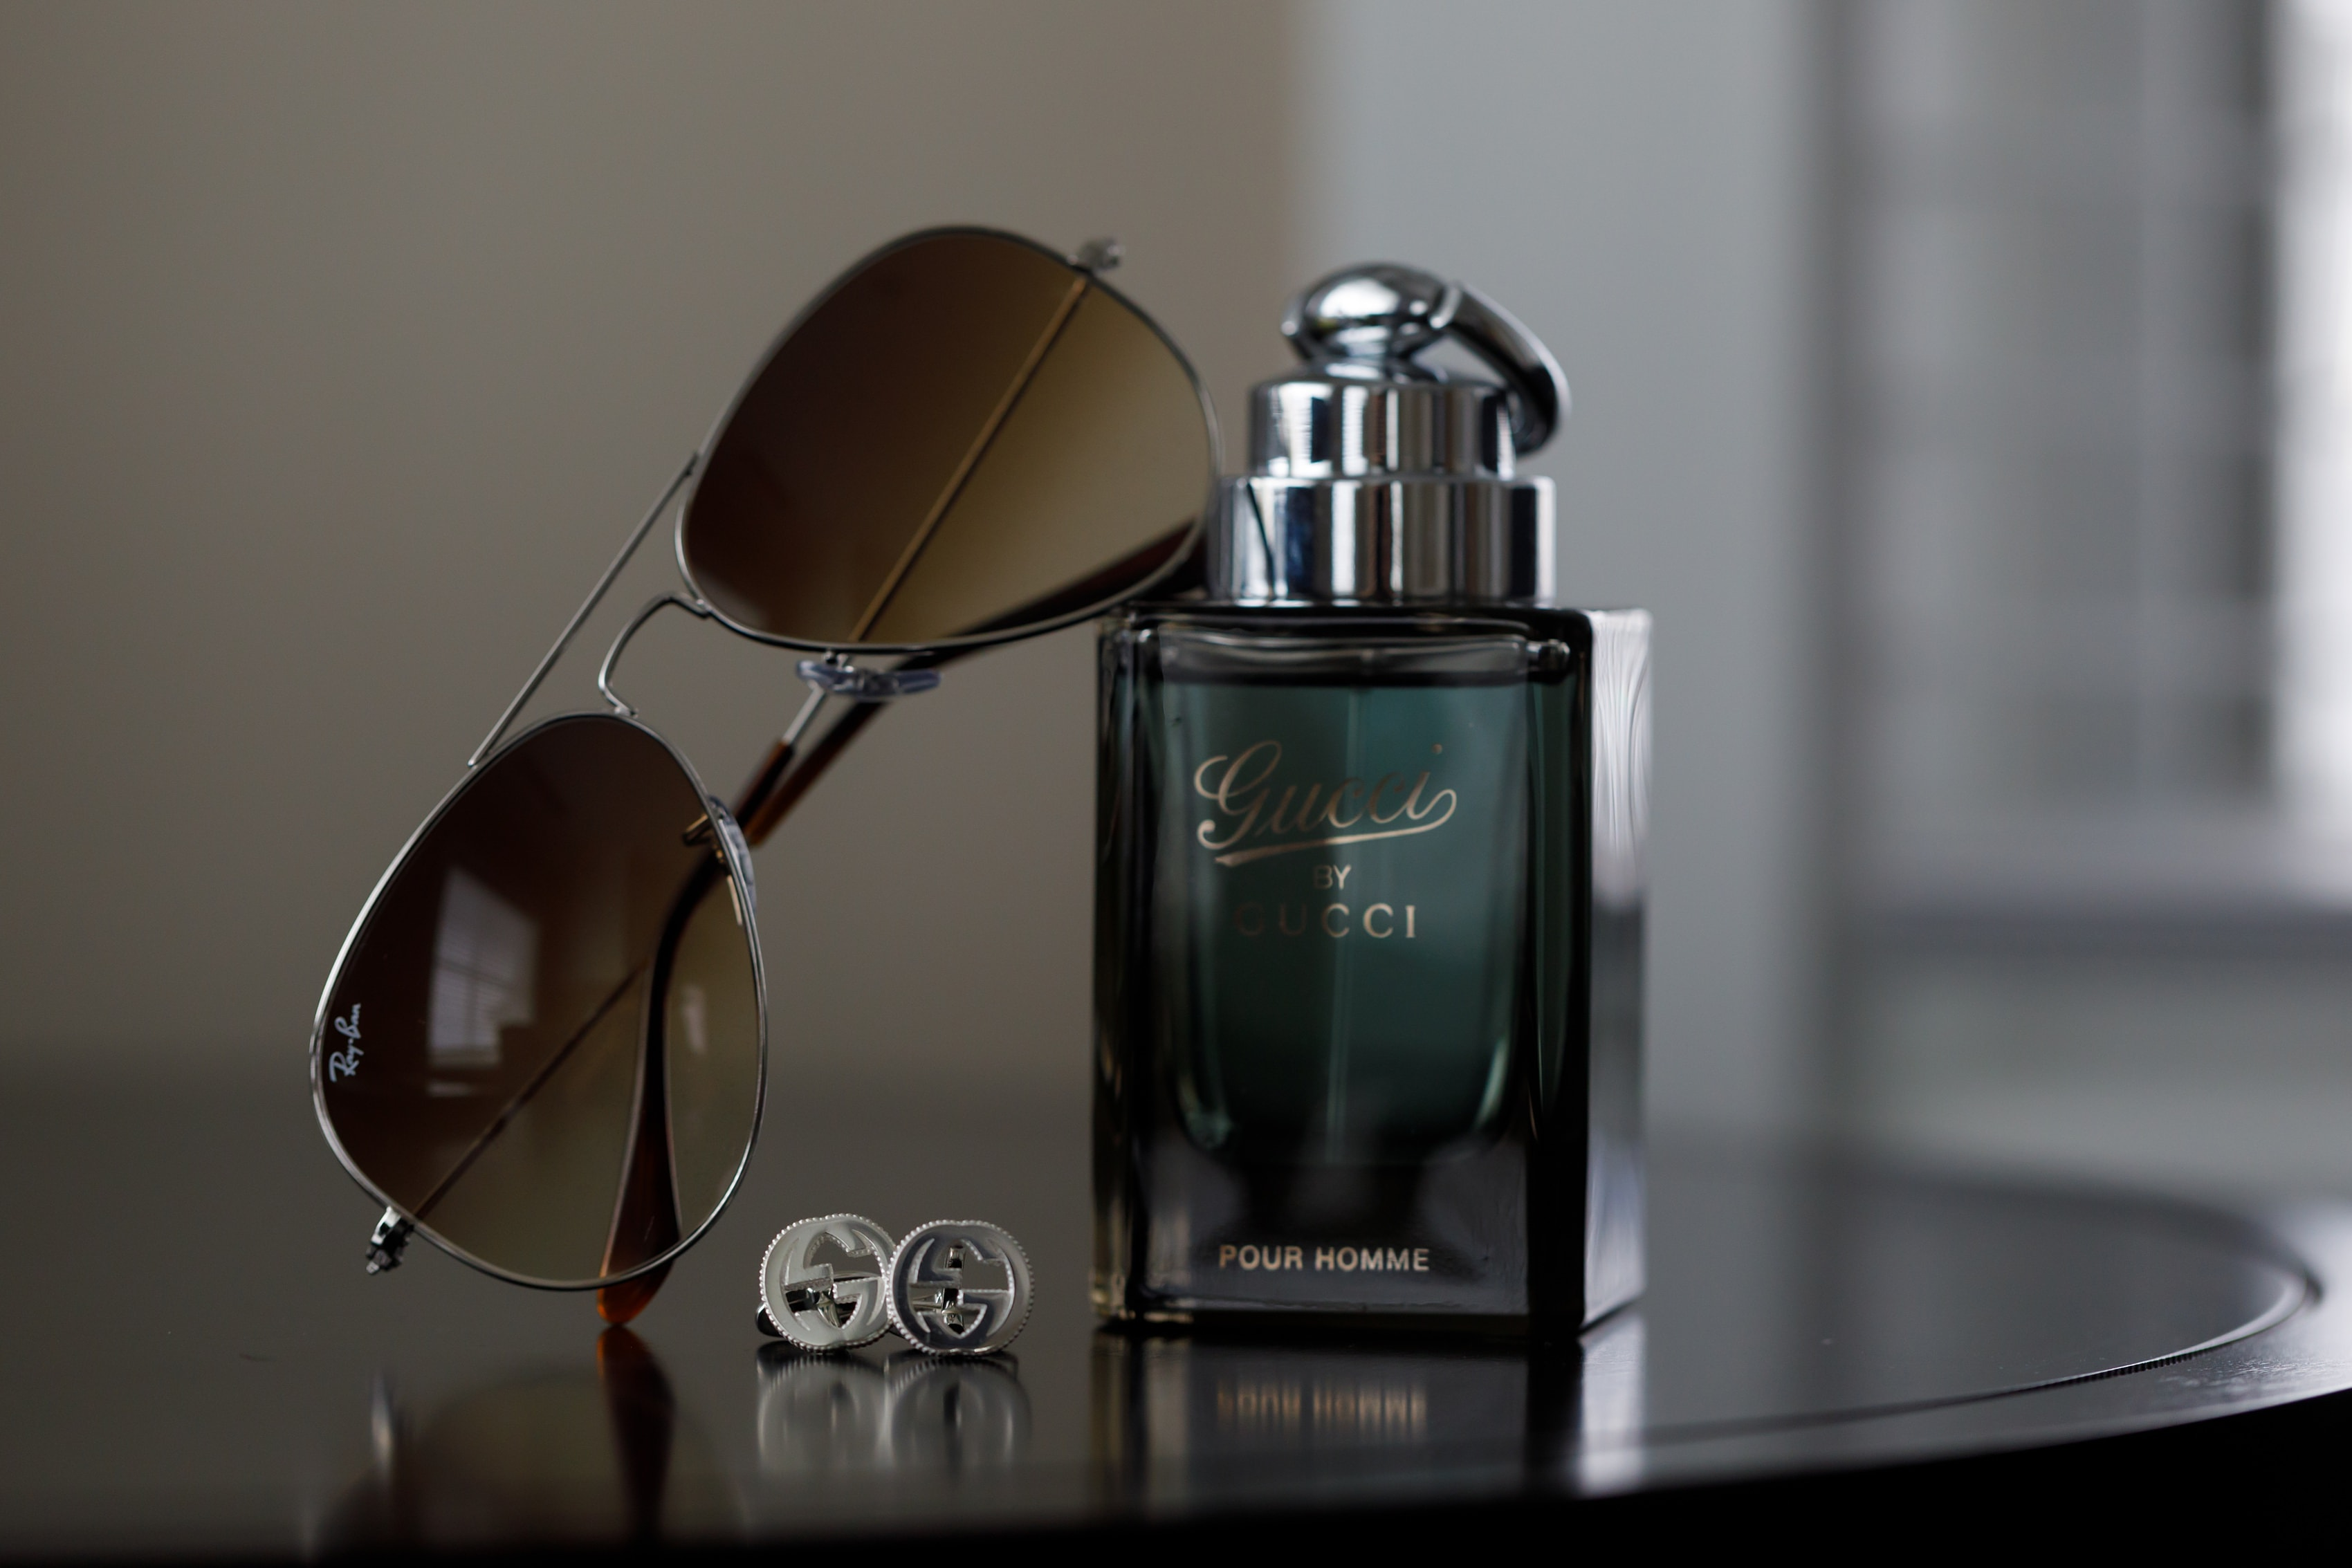 detail of Gucci cologne, cuff links and Ray-Ban sunglasses